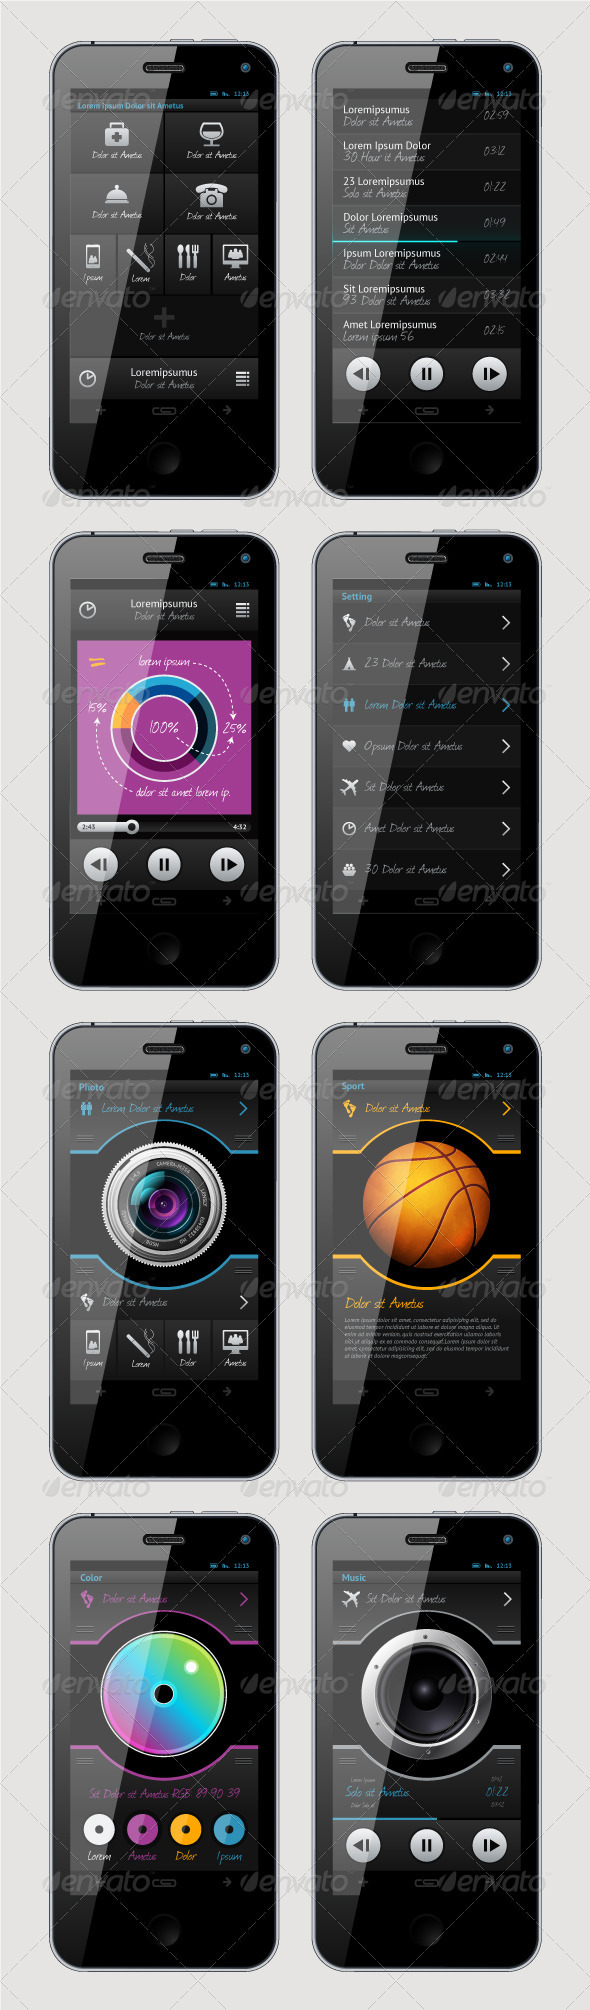 Simple Vector Template Interface for Phone   - Miscellaneous Vectors